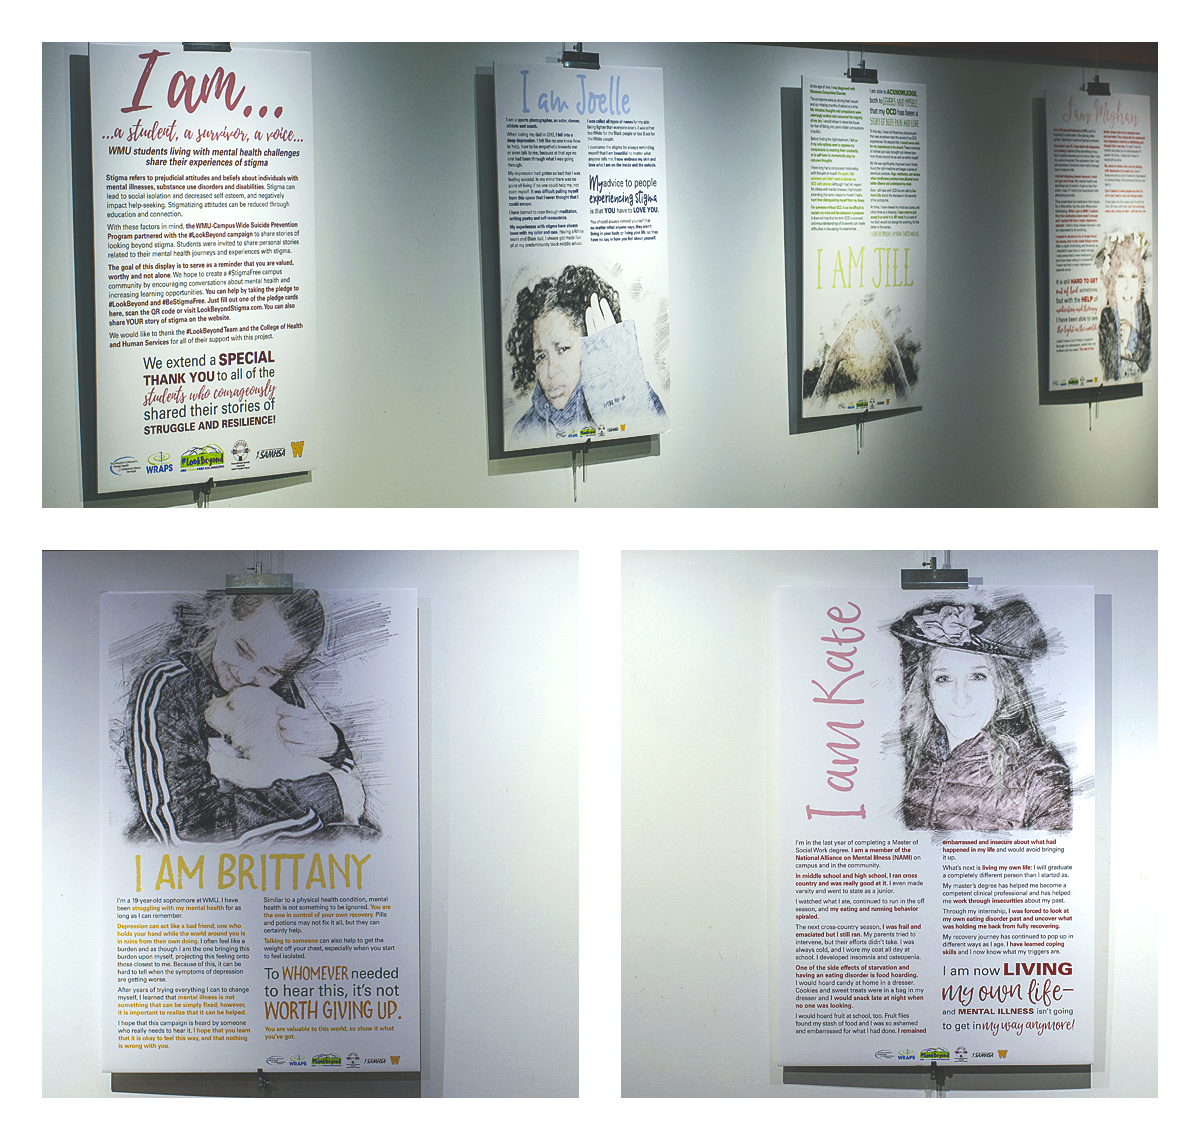 """Artwork for the exhibit """"I am a Student, a Survivor, a Voice: WMU Students Living with Mental Health Challenges Share Their Experiences of Stigma."""""""